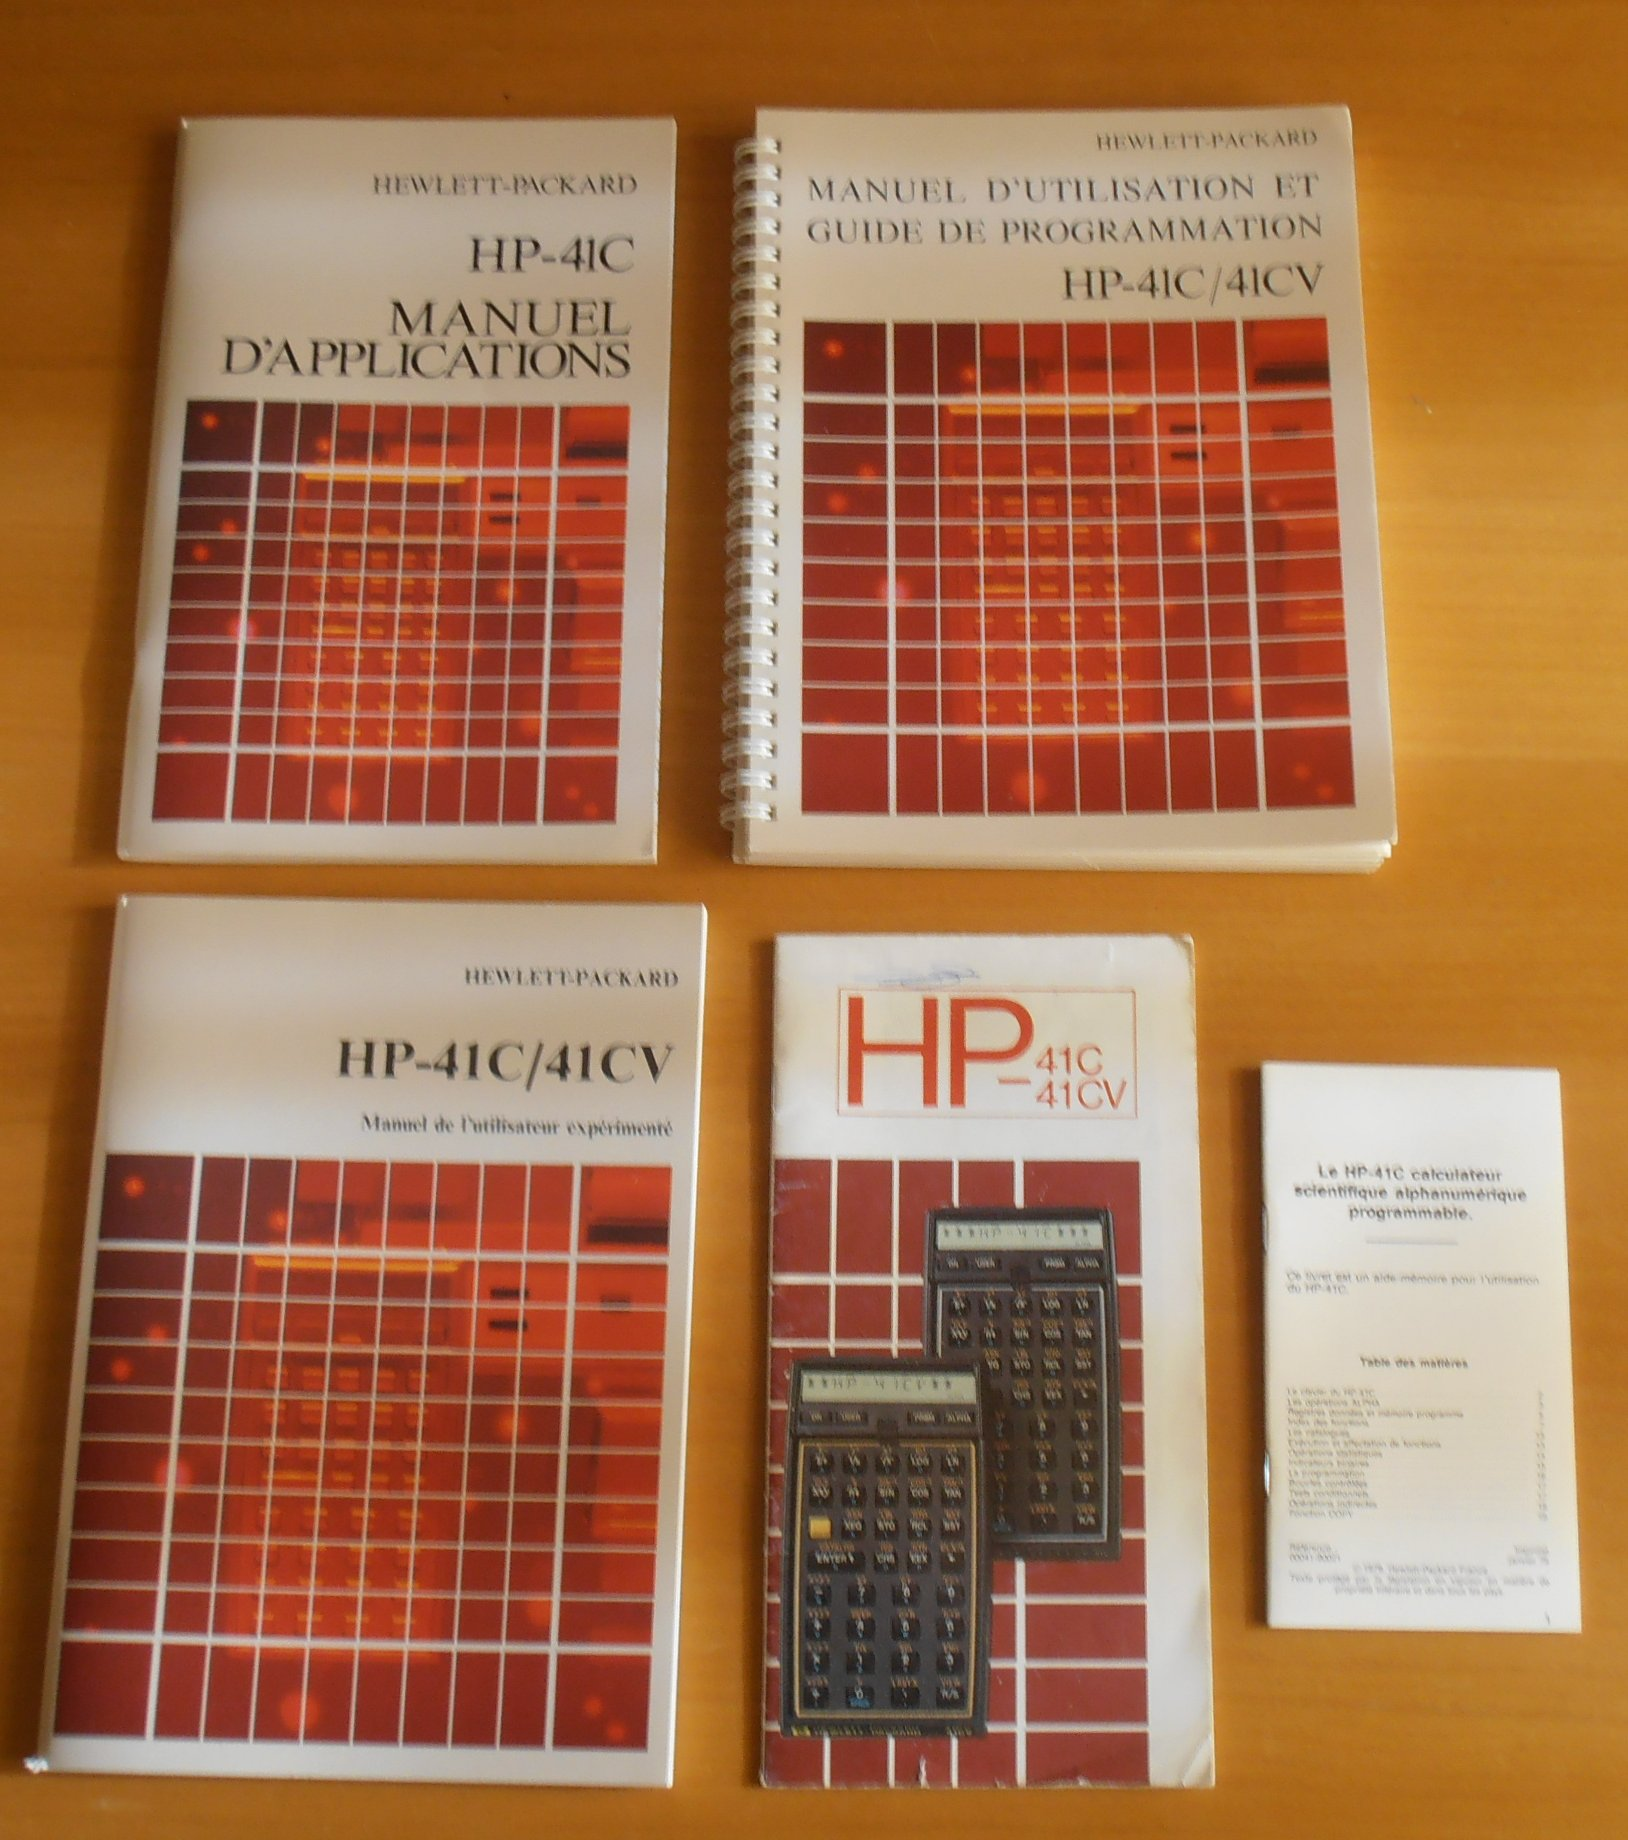 HP 41 CV Documentation